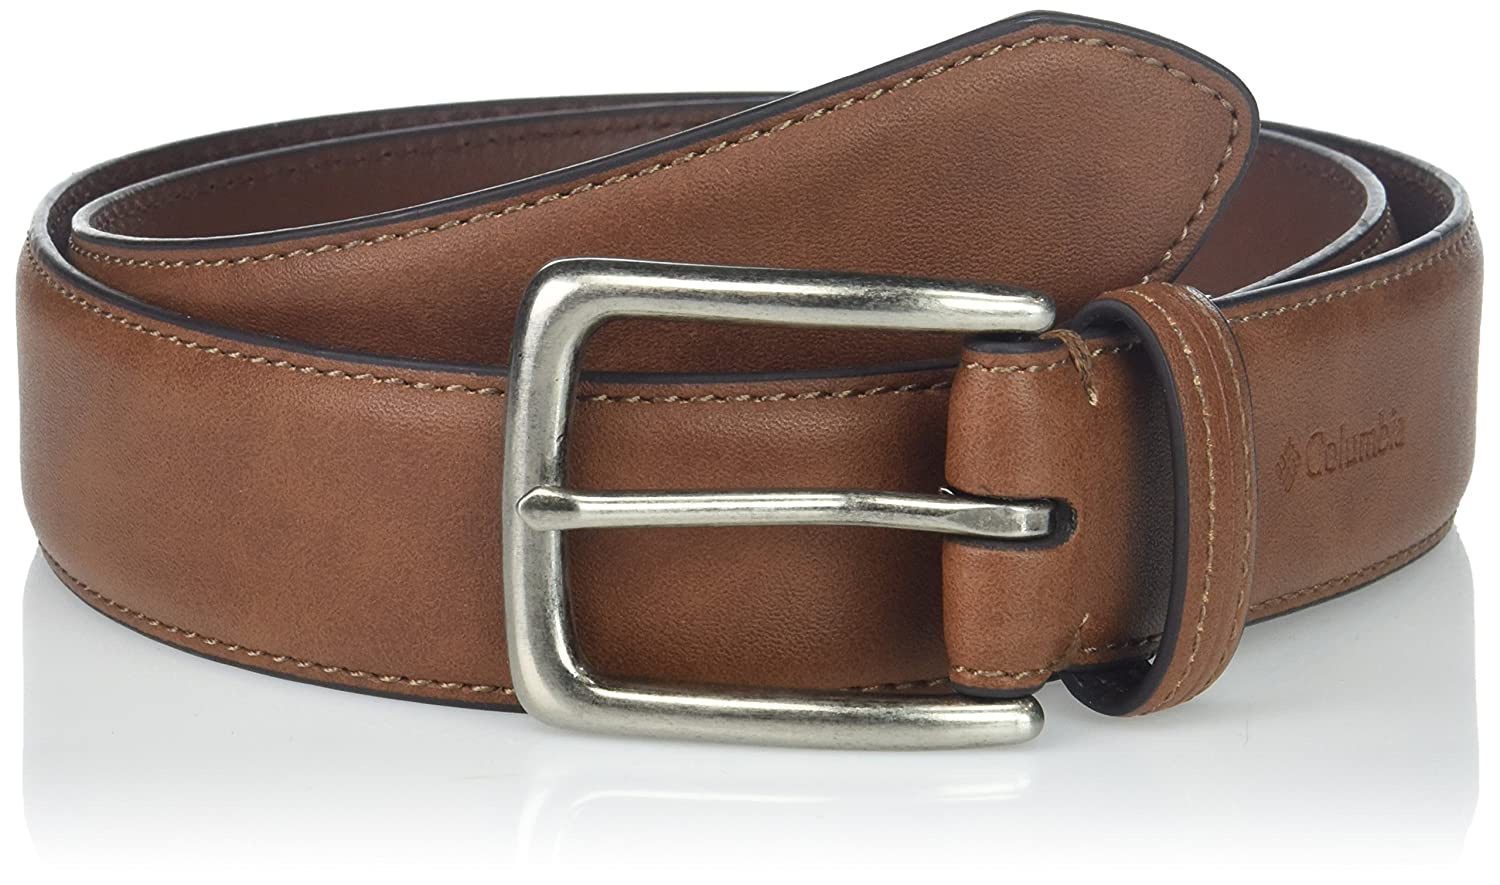 Columbia Men's Trinity 35mm Feather-Edge Belt 11CO02L4